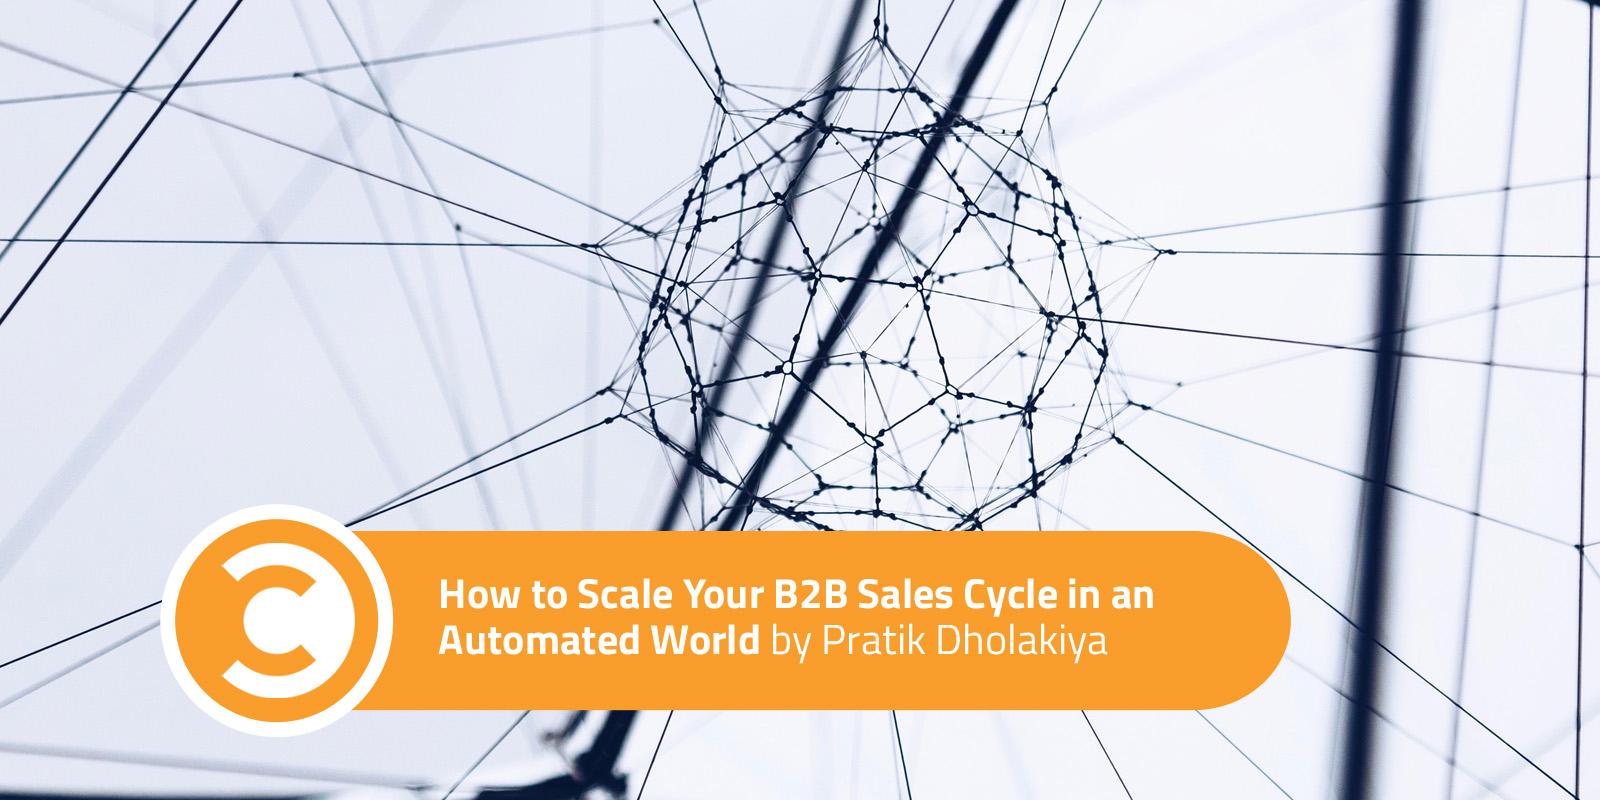 How to Scale Your B2B Sales Cycle in an Automated World